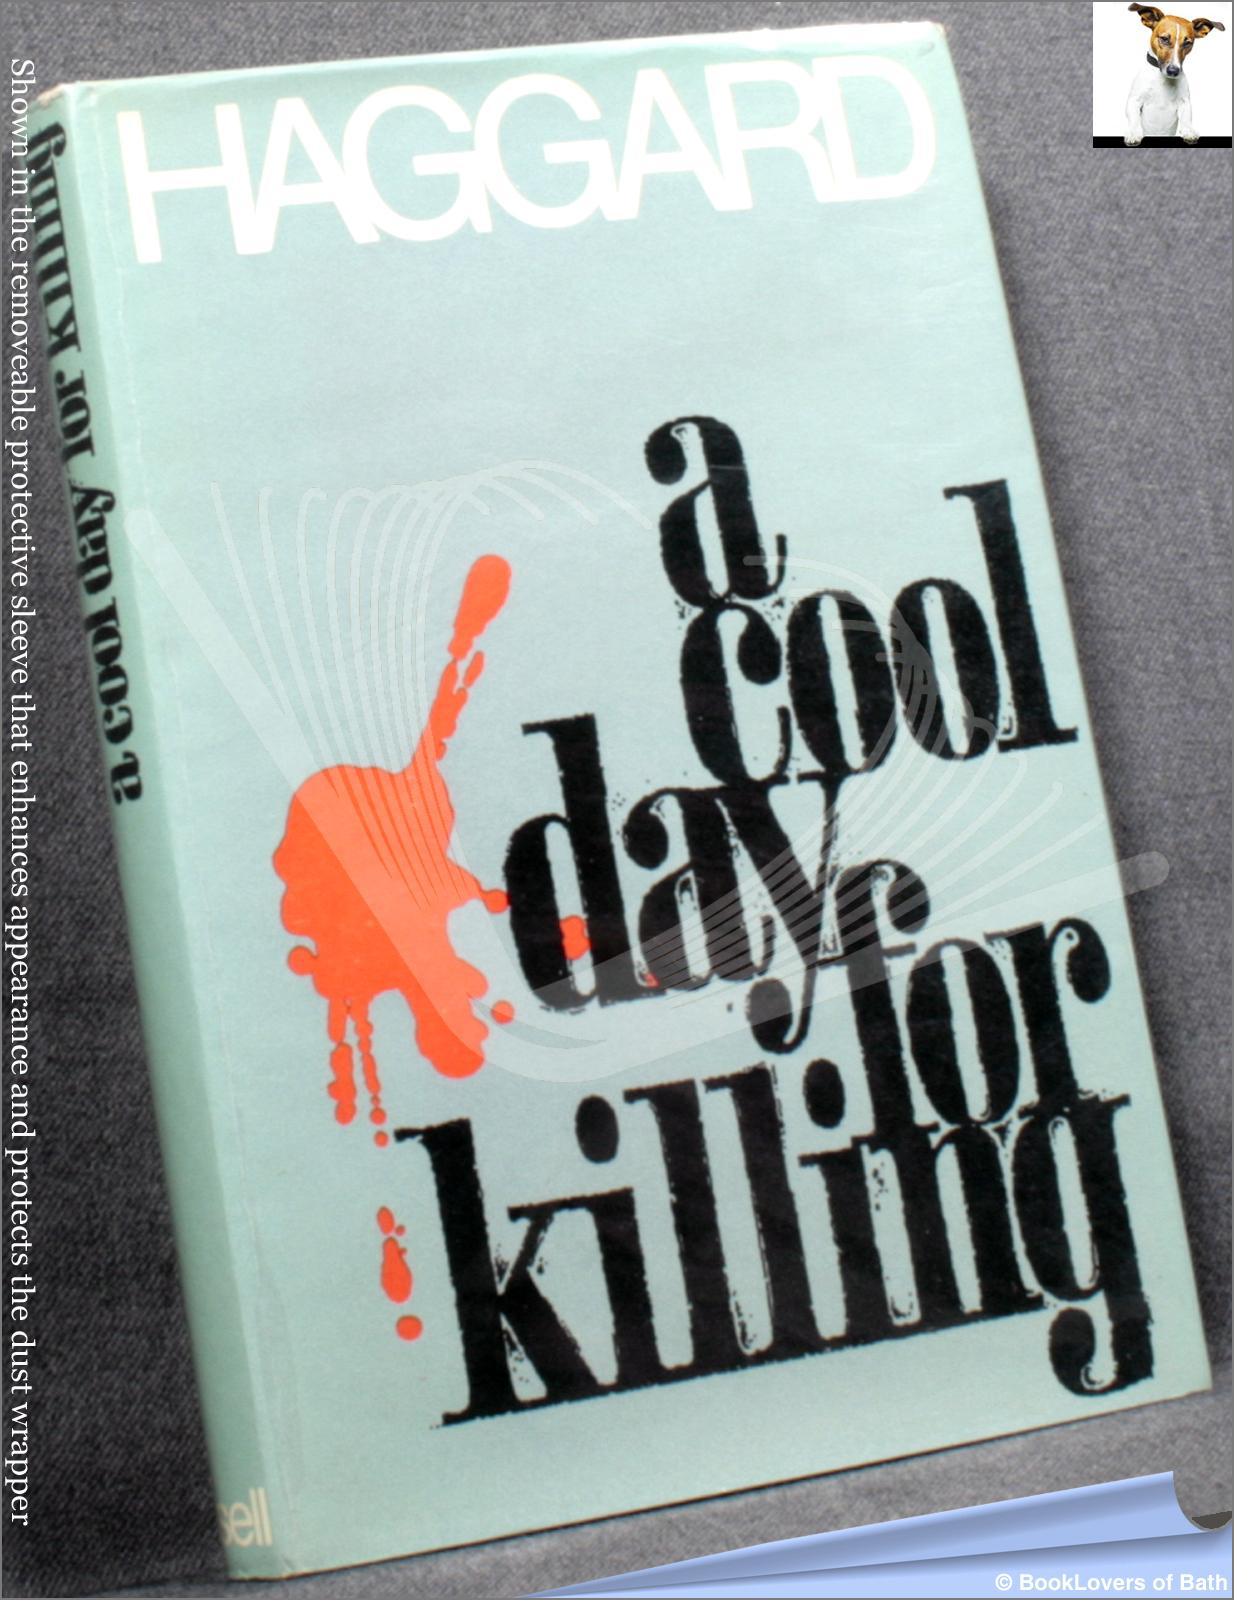 A Cool Day for the Killing - William Haggard